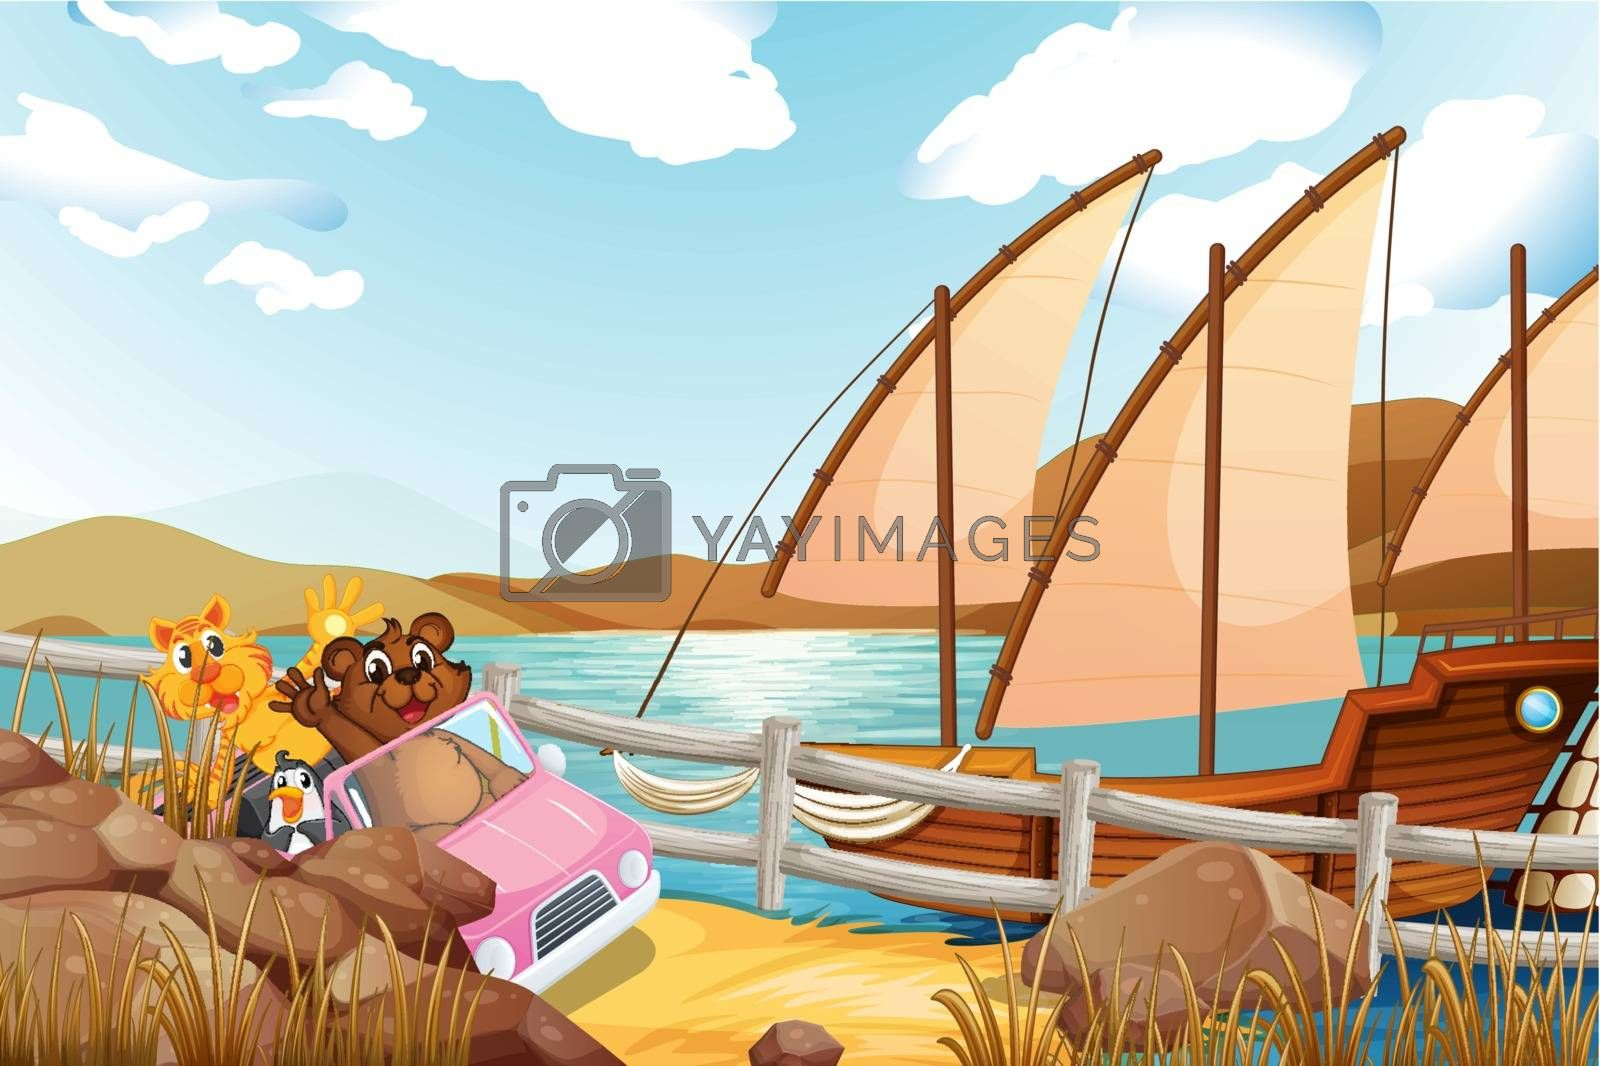 Illustration of a pink car with animals at the riverbank with a ship